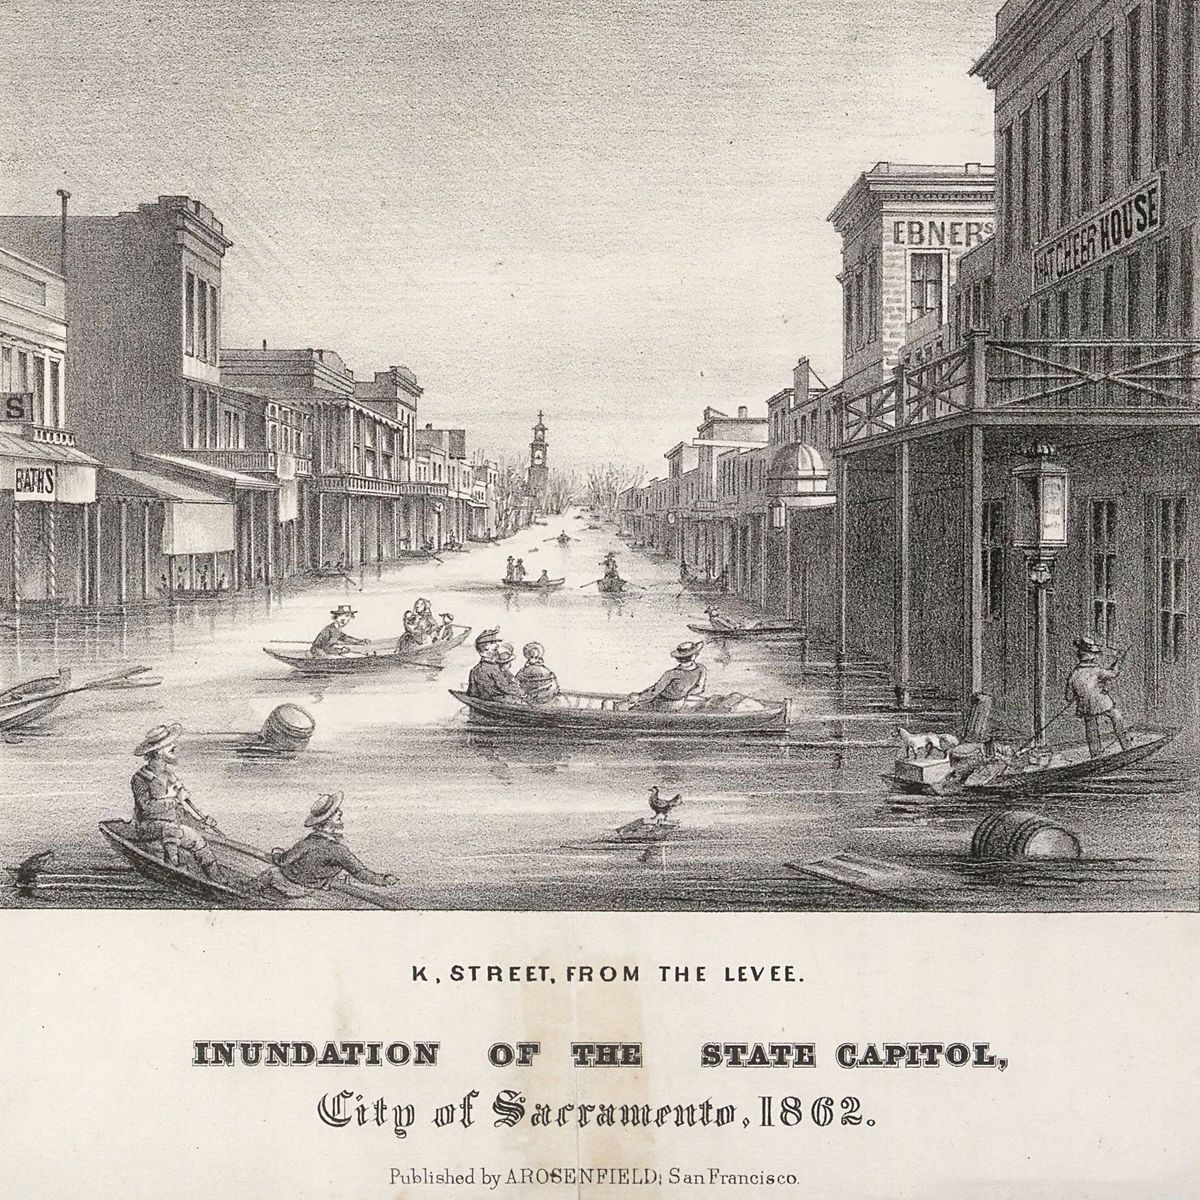 Great Flood of 1862 - Wikipedia